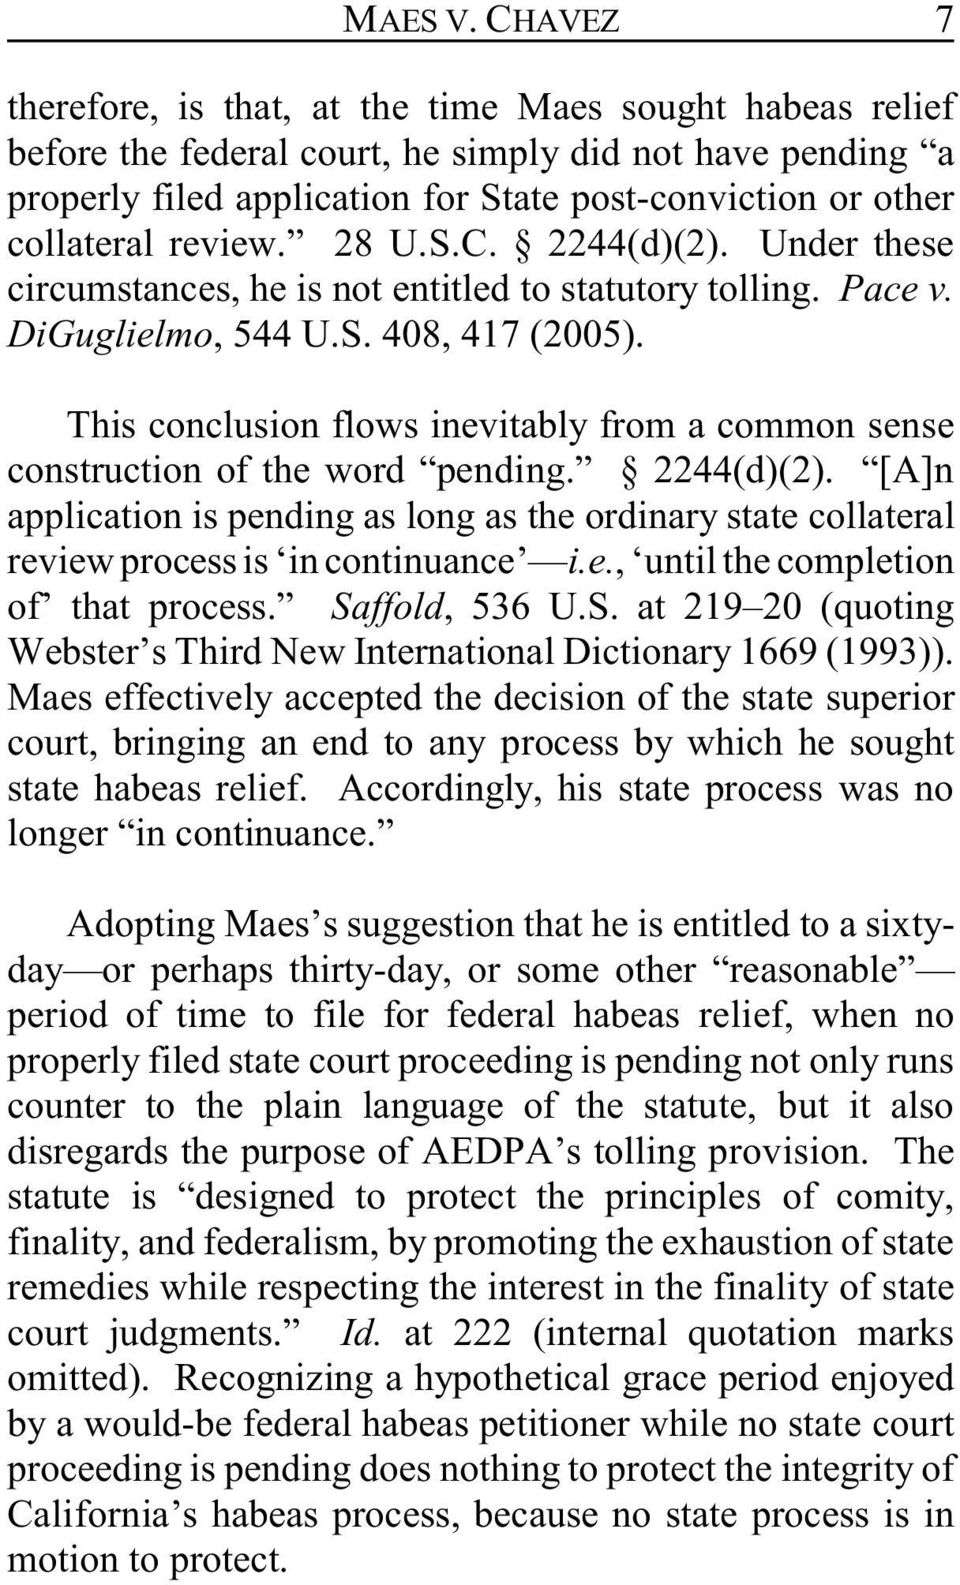 review. 28 U.S.C. 2244(d)(2). Under these circumstances, he is not entitled to statutory tolling. Pace v. DiGuglielmo, 544 U.S. 408, 417 (2005).